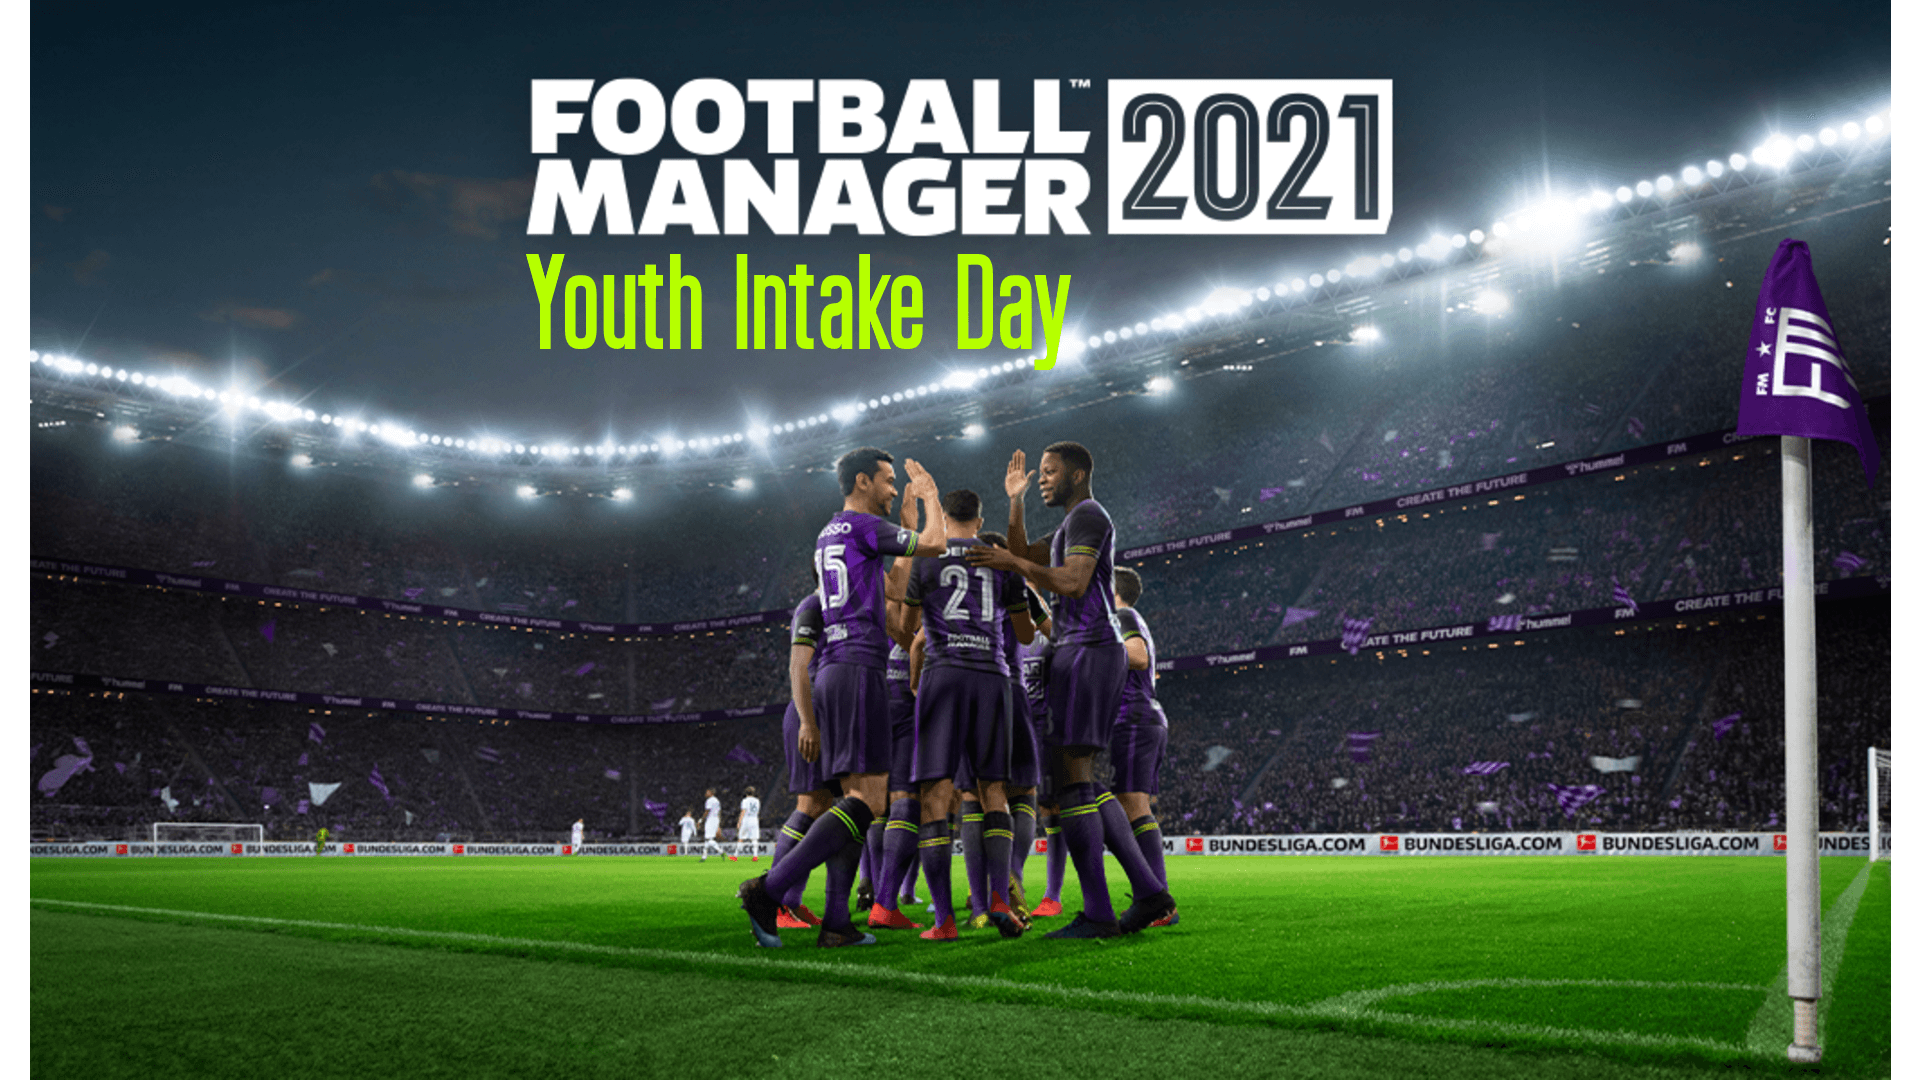 Football Manager 2021 Guide - How to Get the Best Youth Intake